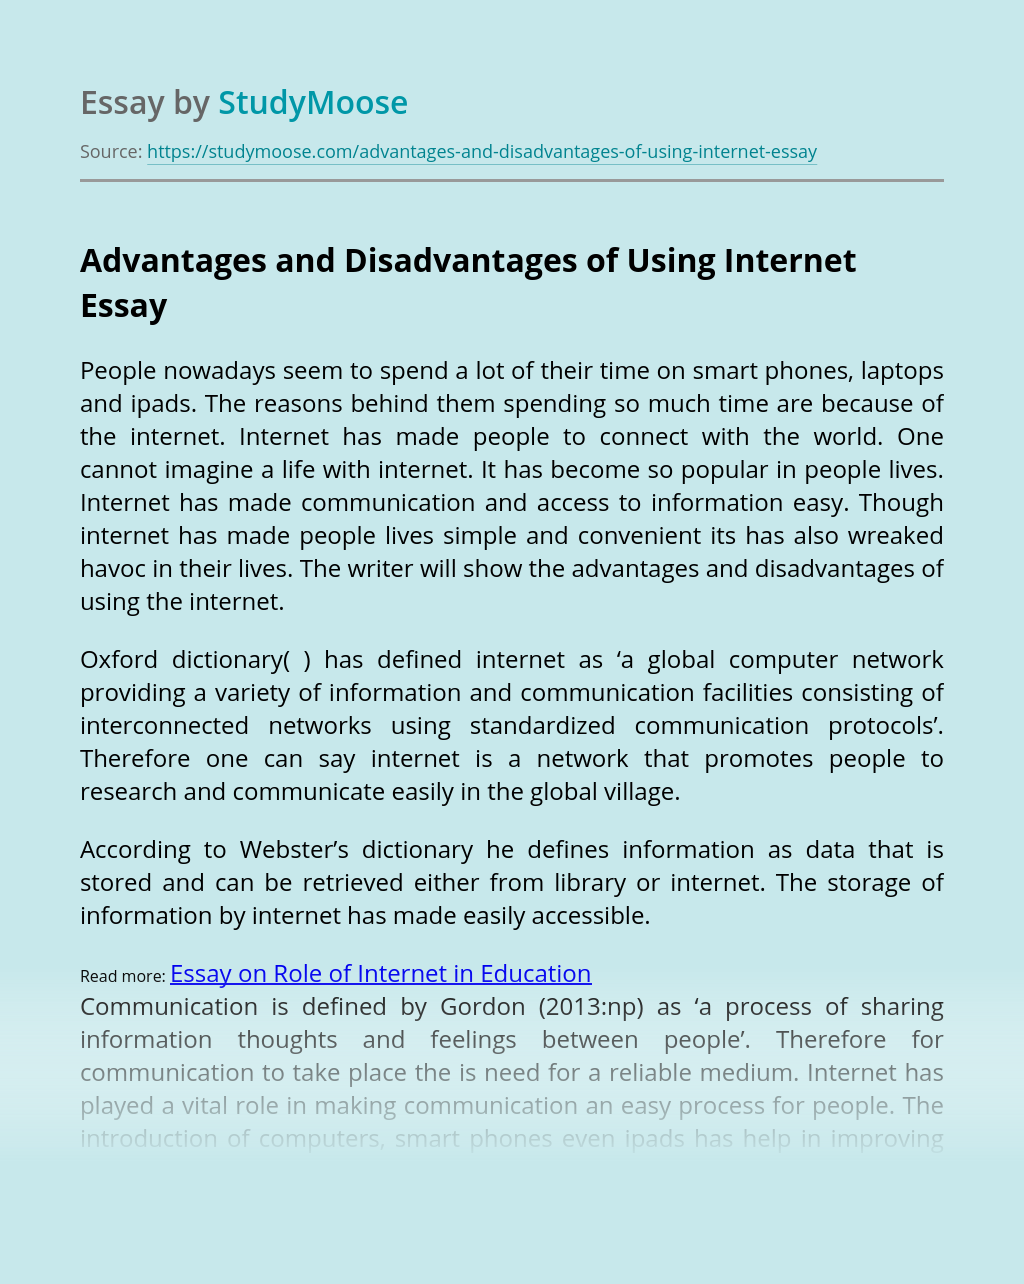 Advantages and Disadvantages of Using Internet